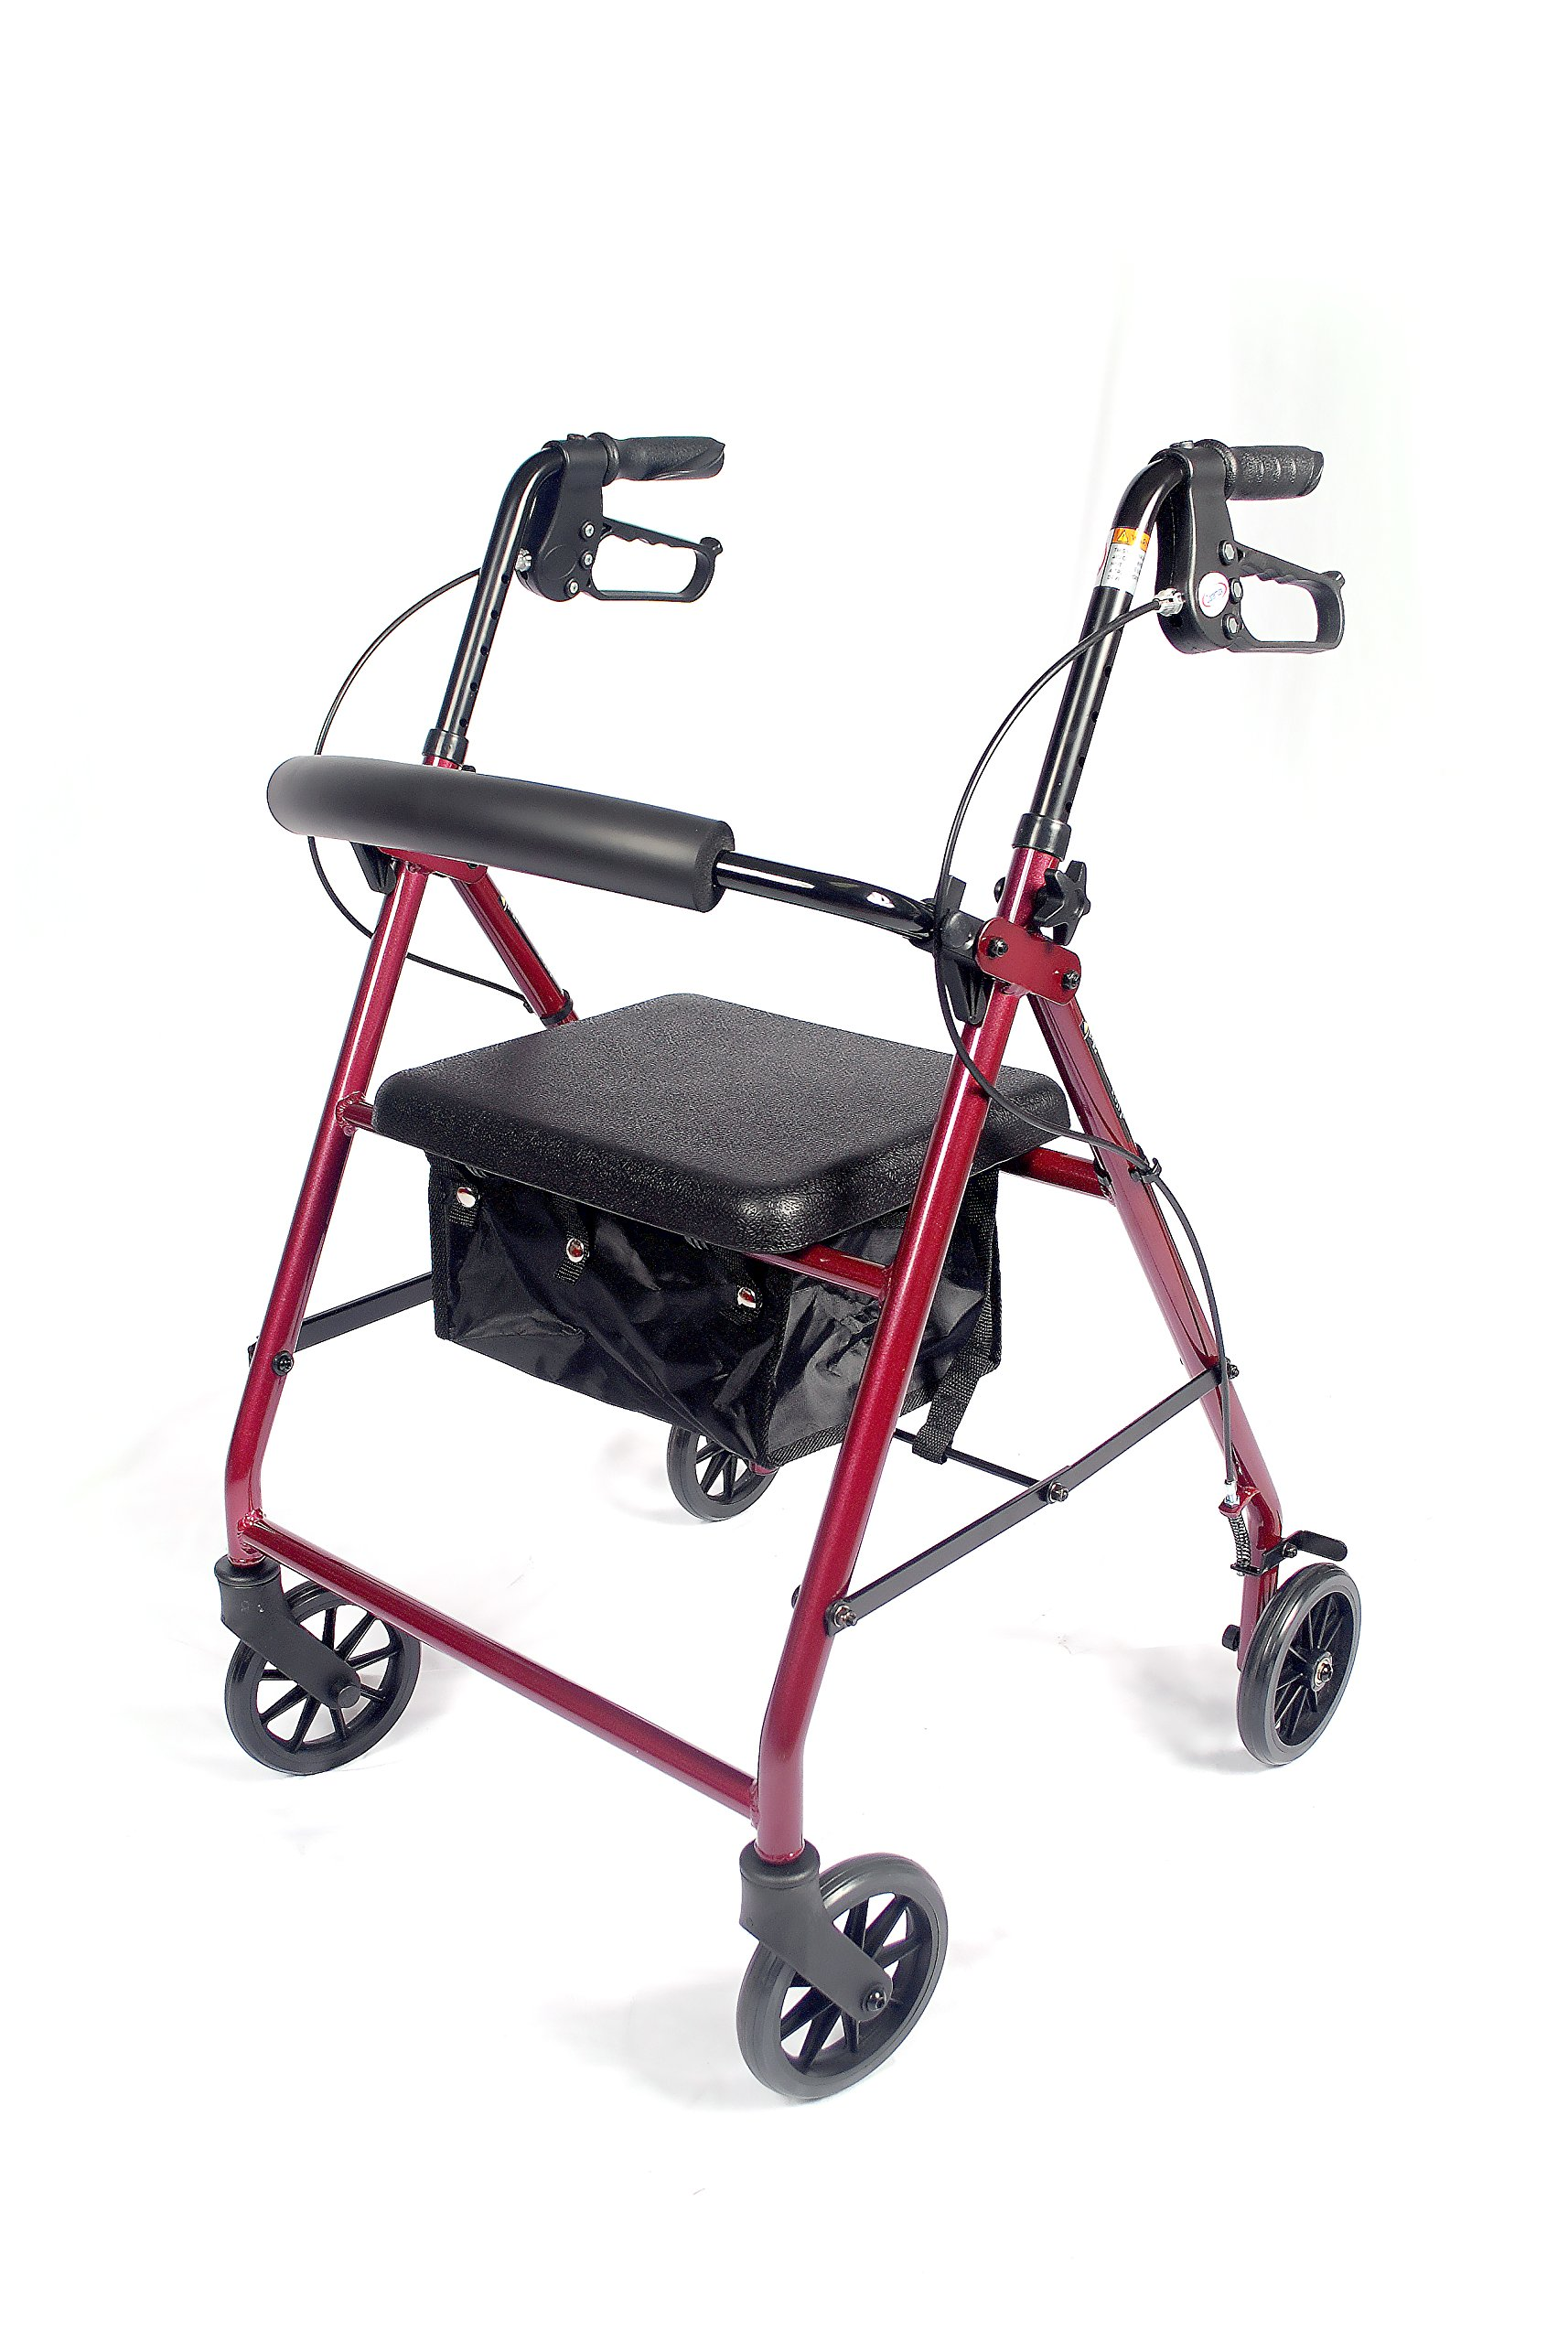 Caremax Steel Rollator Walker Mobility Aid with 300 lb. Weight Capacity by CareMax